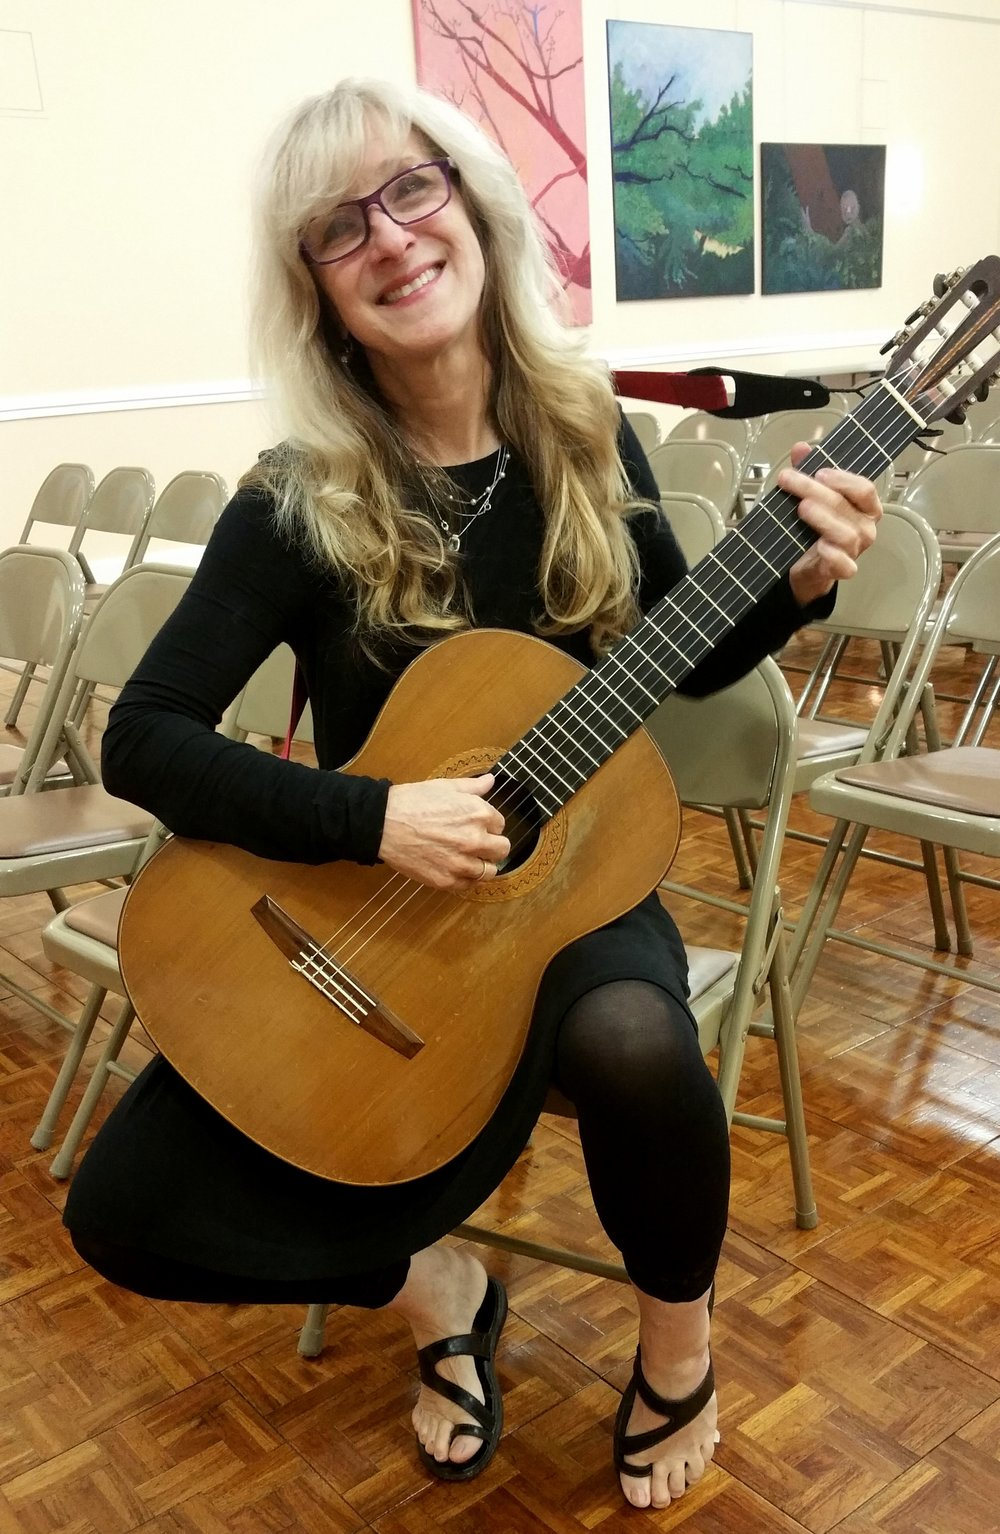 Andrea Carlson Guitar faculty at the Germantown and Willow Grove Branches Faculty member since 2007